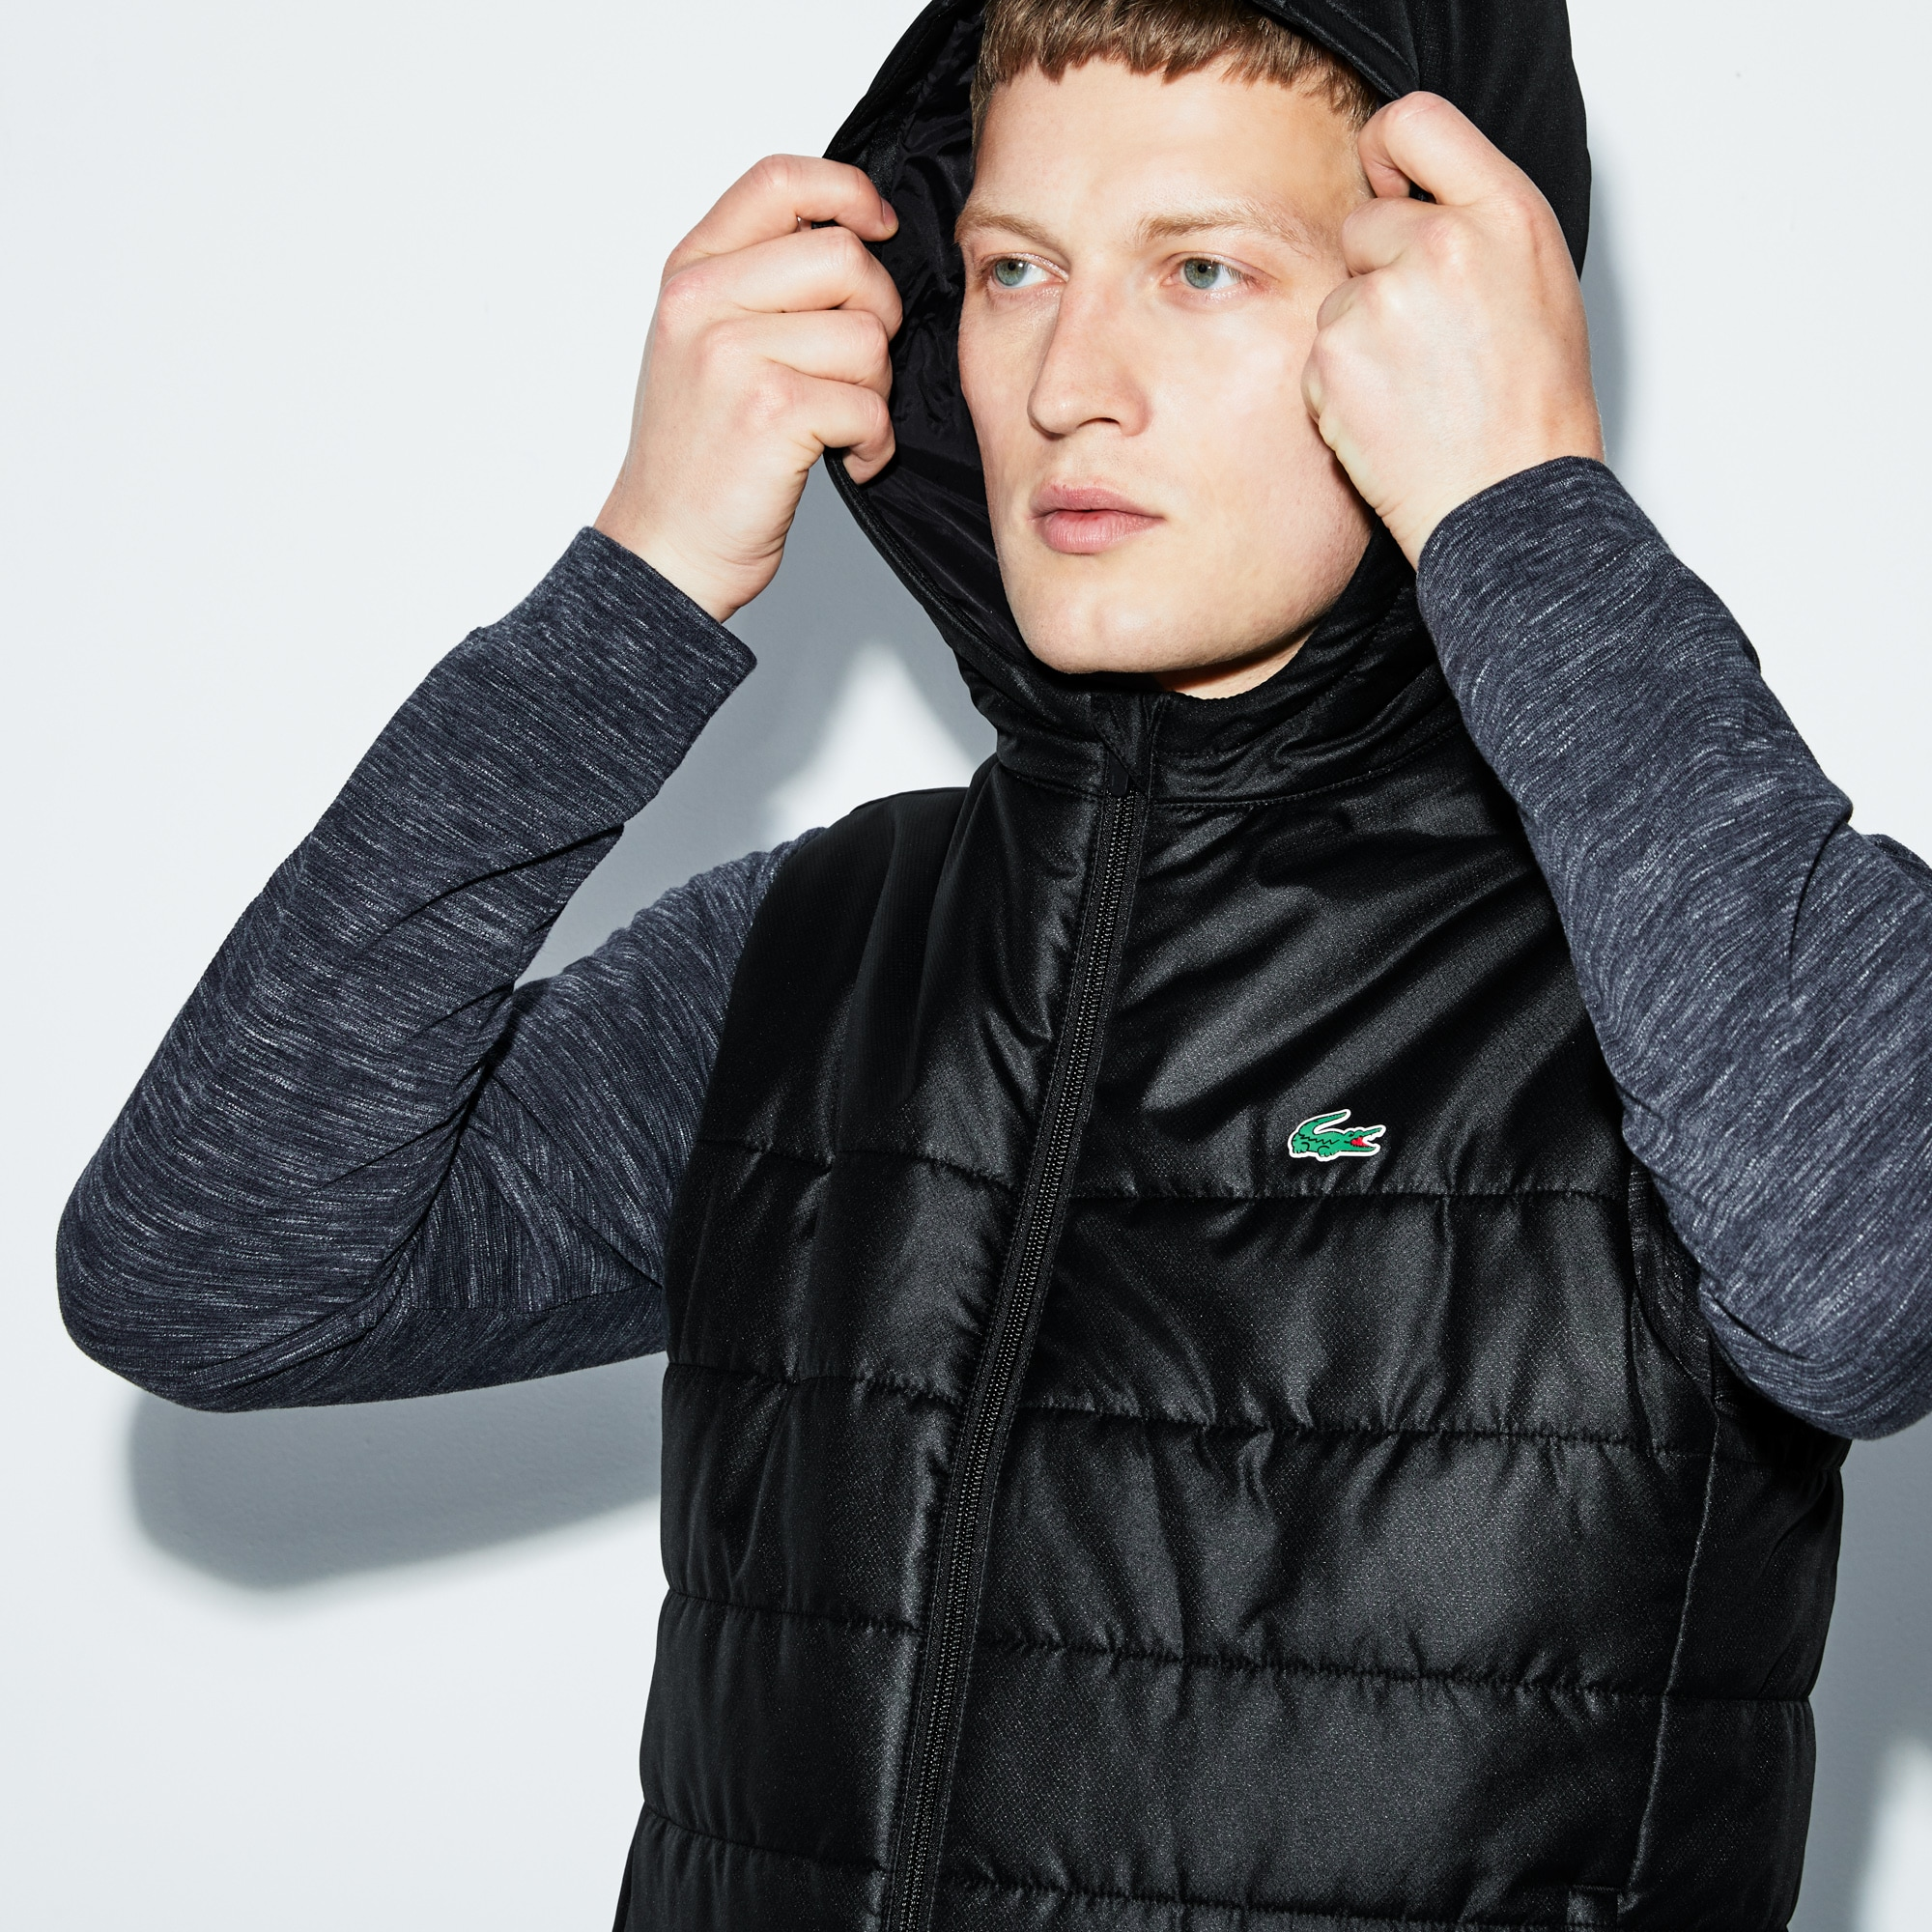 cbbb4638c Men's Jackets and Coats | Lacoste Outerwear | LACOSTE